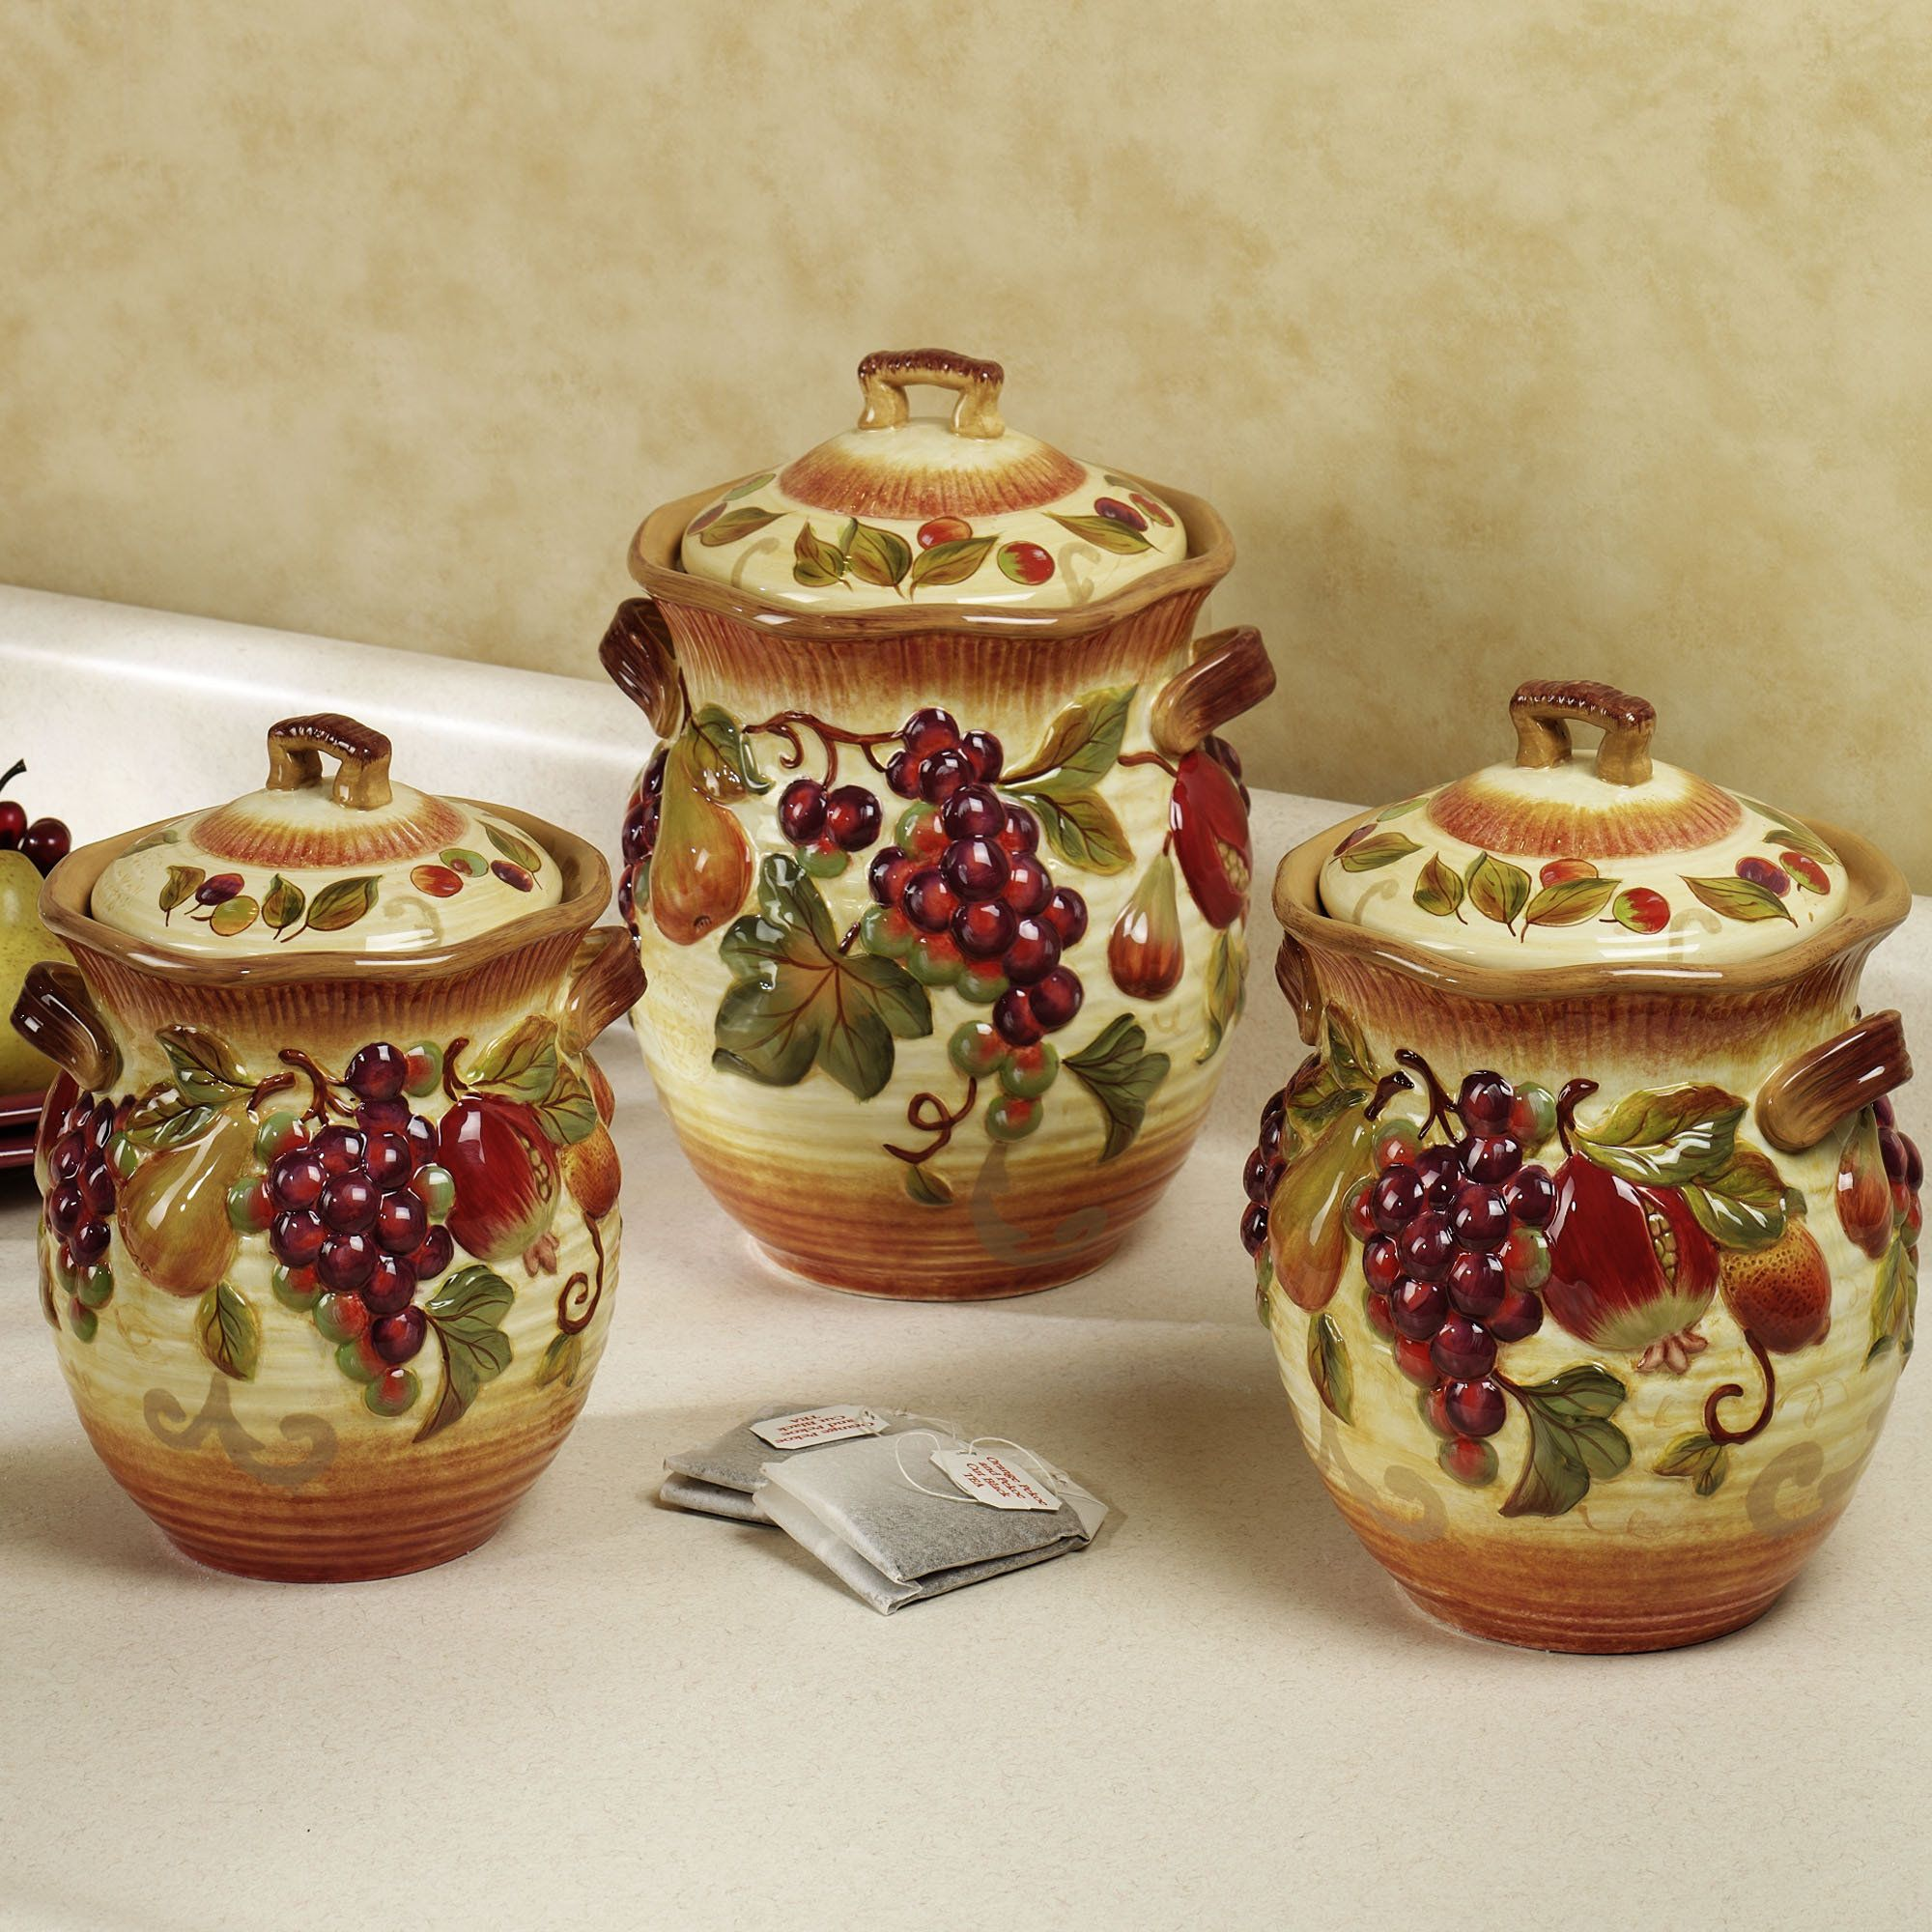 Tuscan Style Dish Set | Kitchen Canisters U2013 Iron Furniture U2013 Metal Wall Art  U2013 Iron